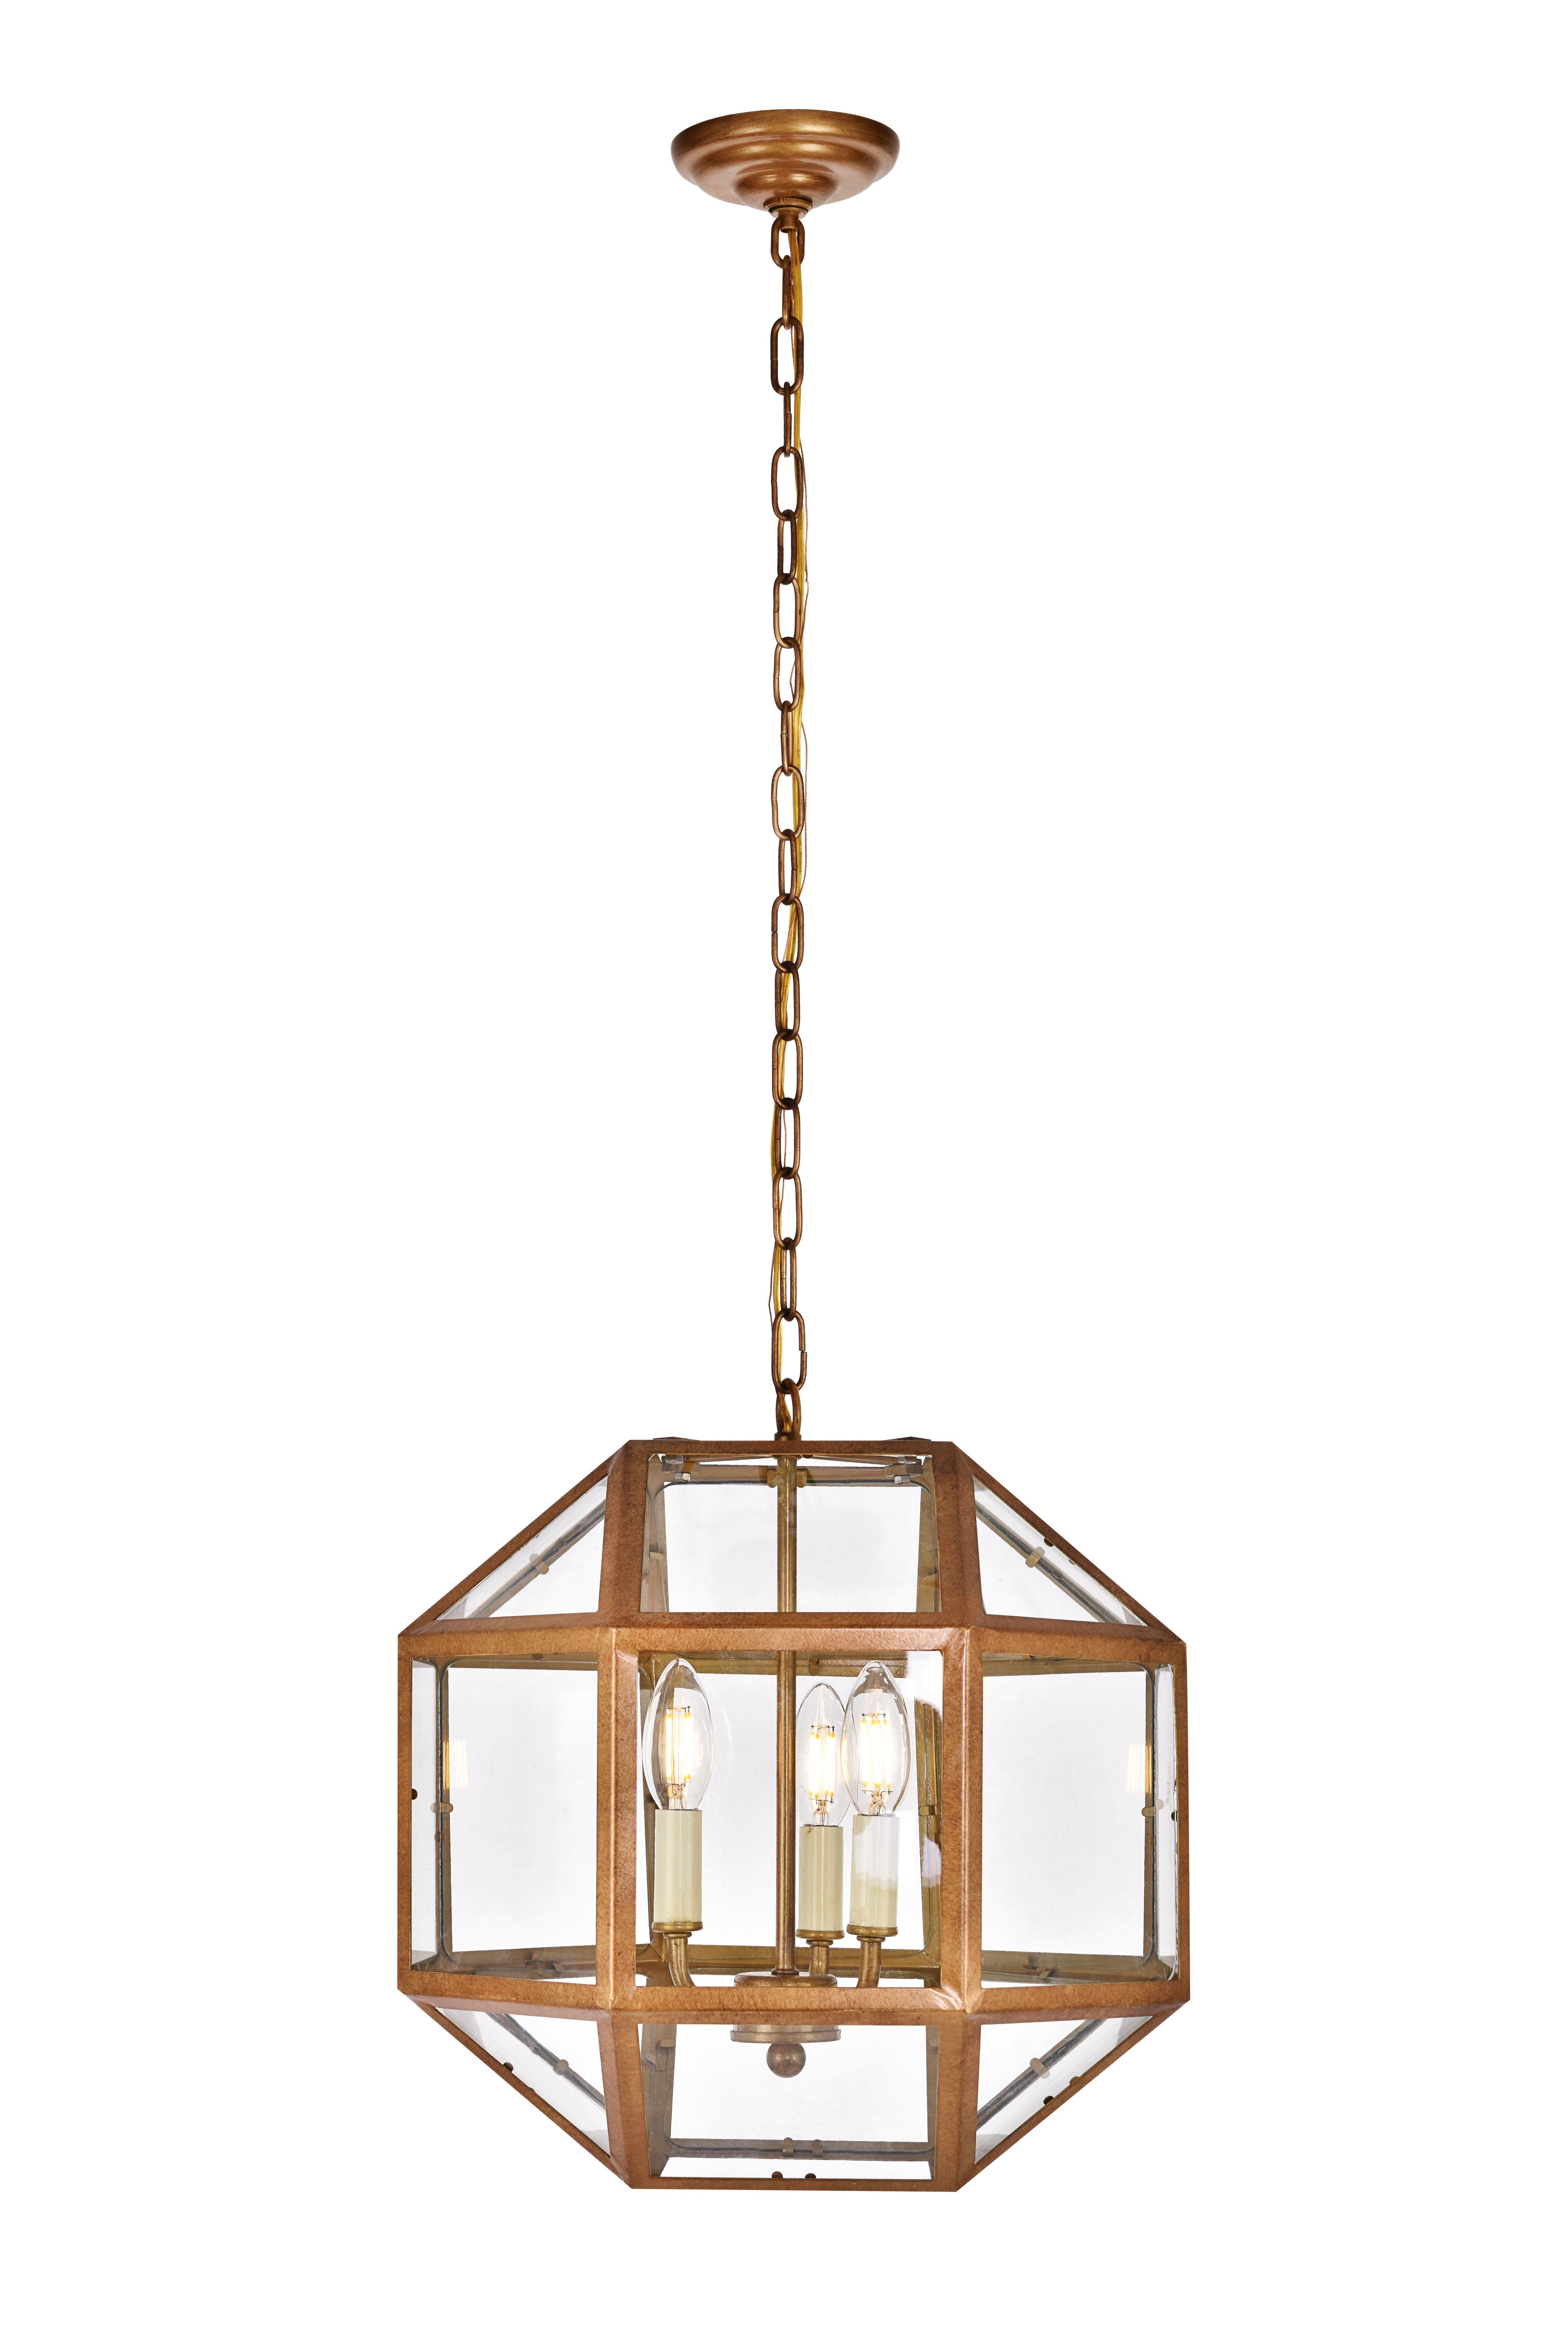 Burkeville 3-Light Geometric Chandelier pertaining to Shipststour 3-Light Globe Chandeliers (Image 7 of 30)